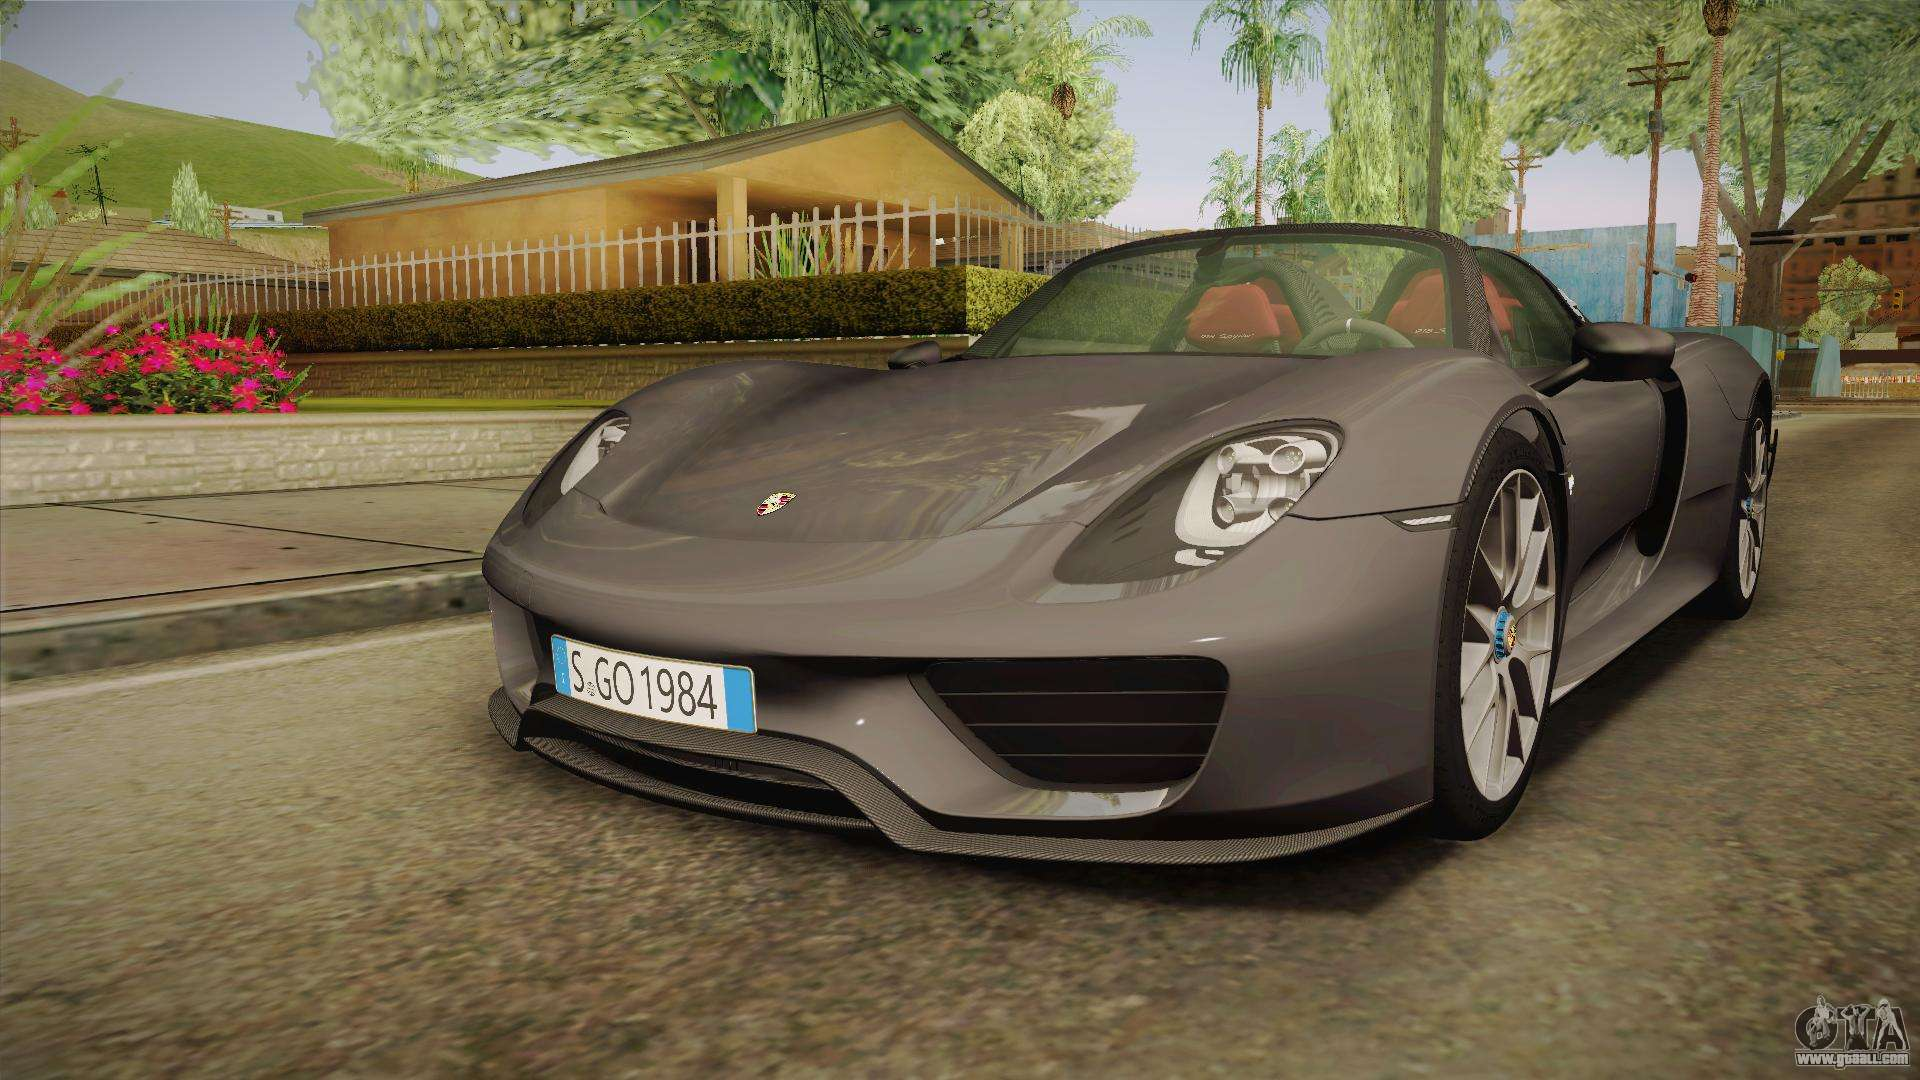 375249-gta-sa-2016-12-31-15-47-52-39 Remarkable Porsche 918 Spyder On the Road Cars Trend